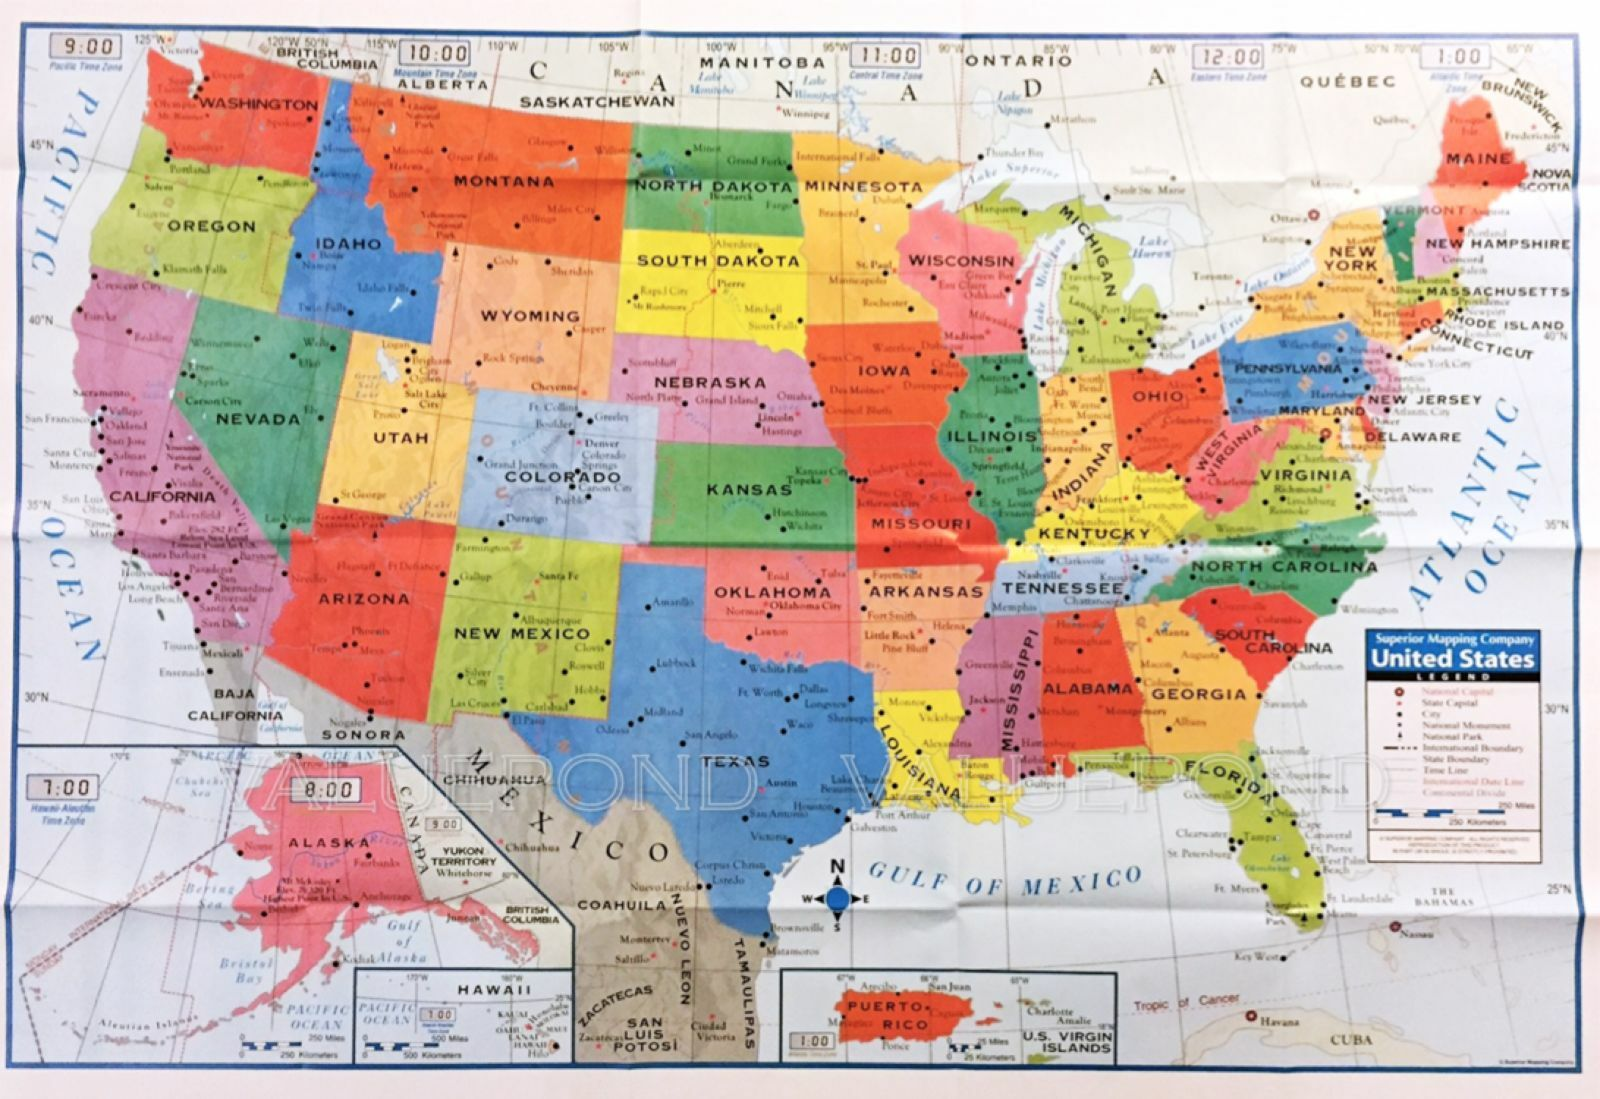 USA US MAP Poster Size Wall Decoration Large MAP Of United States - Us map poster 24x36